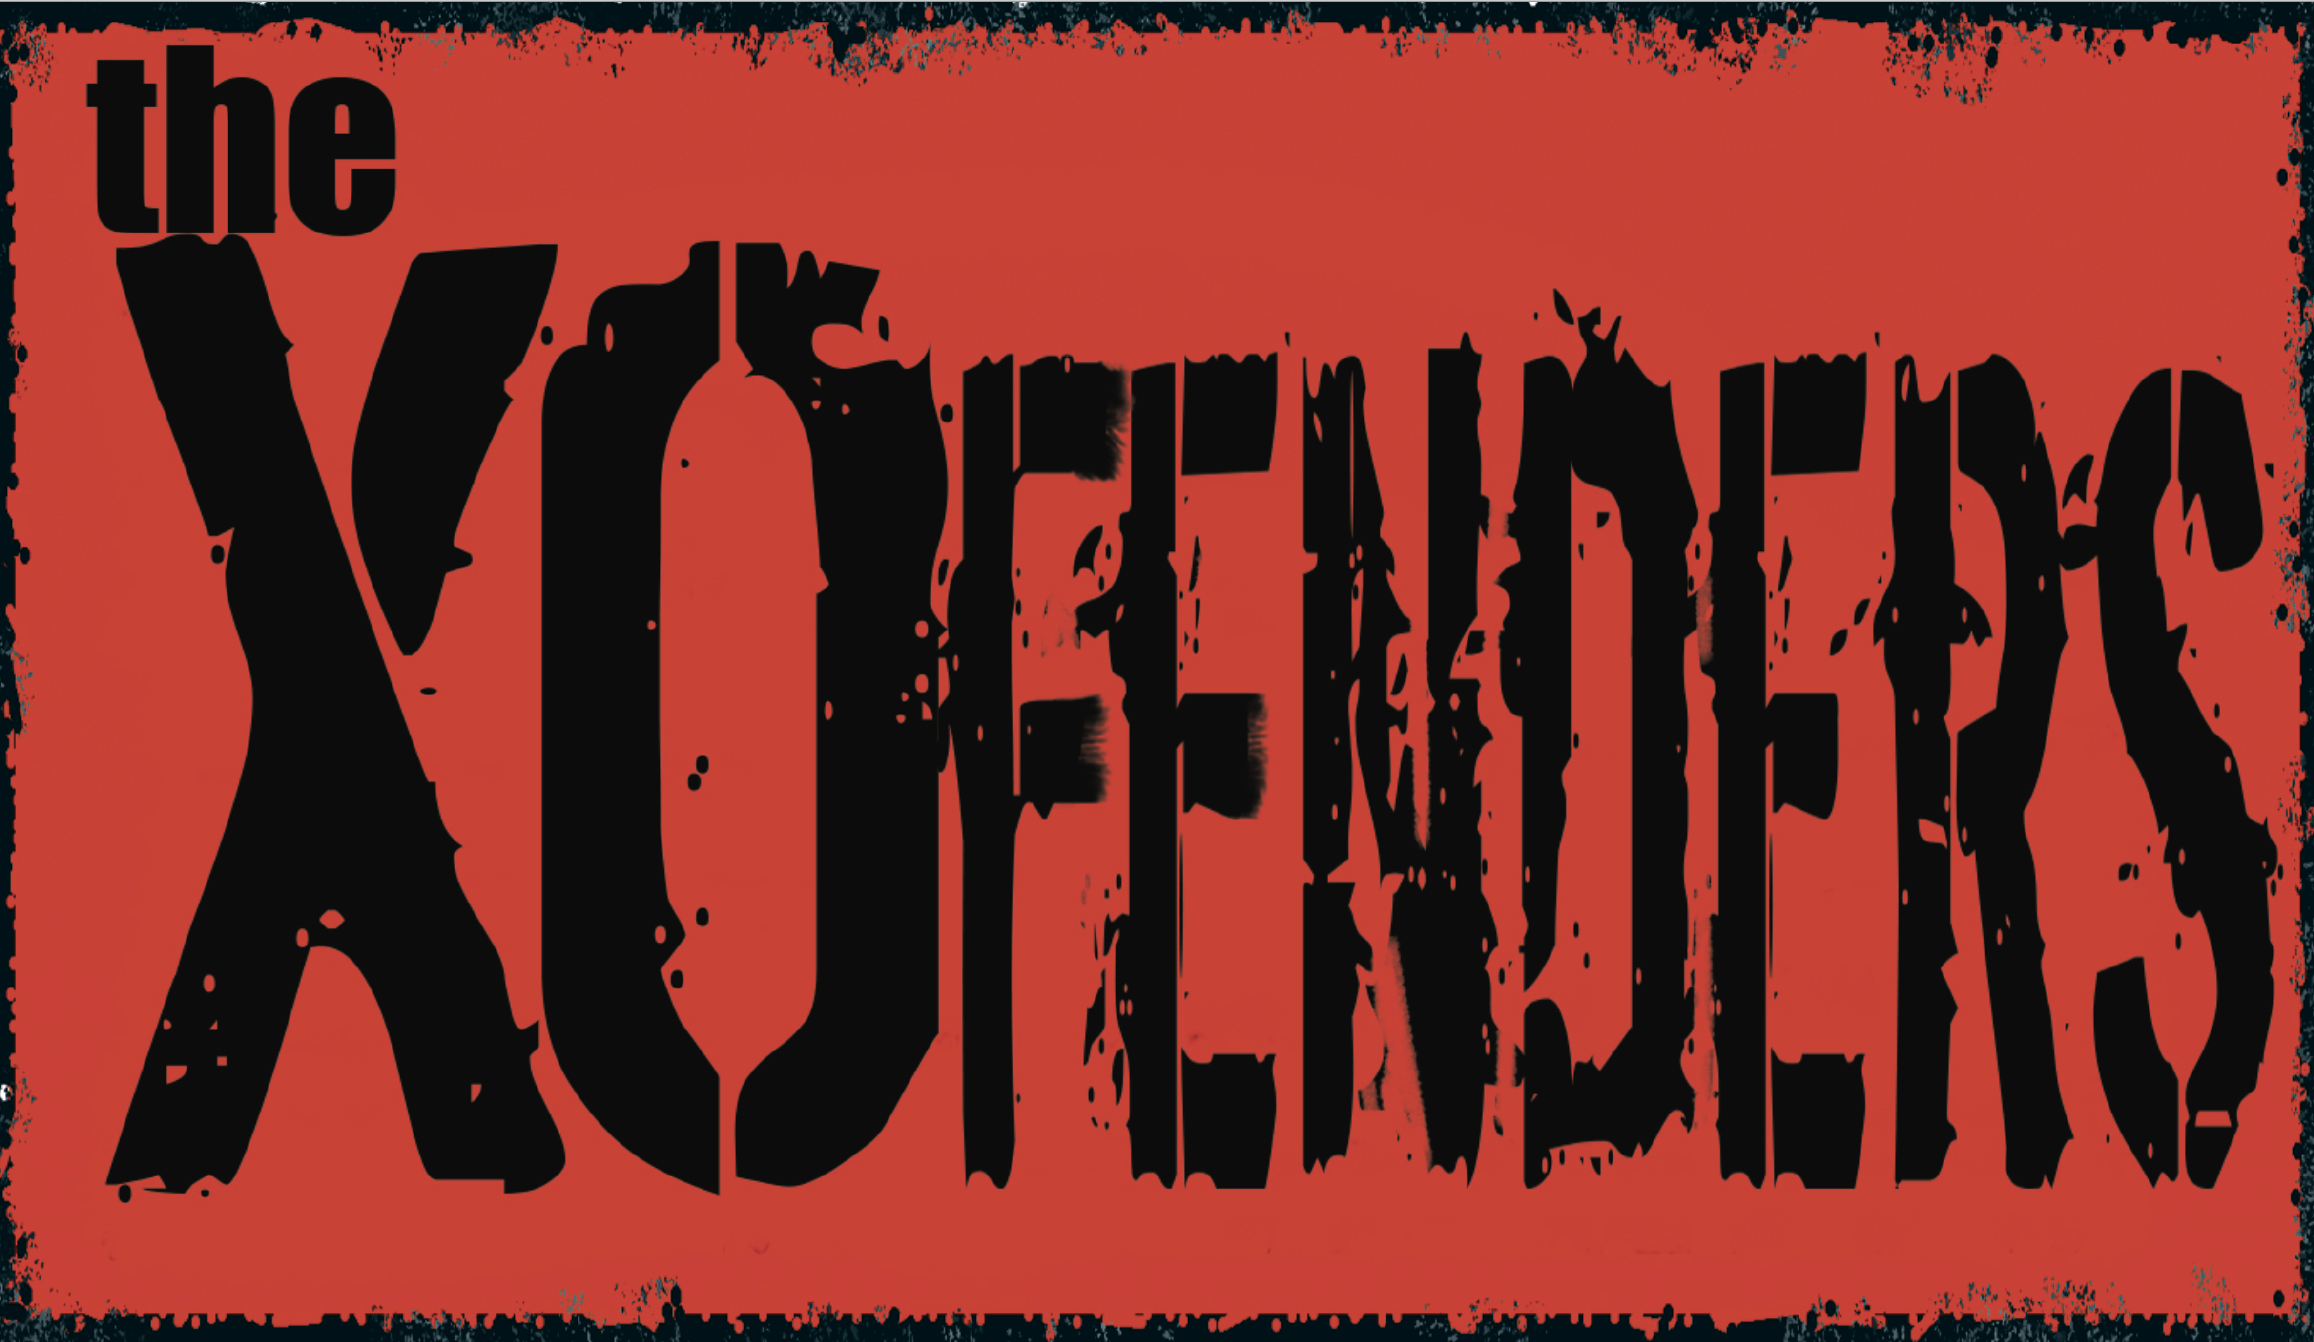 Local Indie Rock, R&B, Punk, Grunge Artist The XOfenders is performing at The Skylark in West Seattle at 2021-09-18.